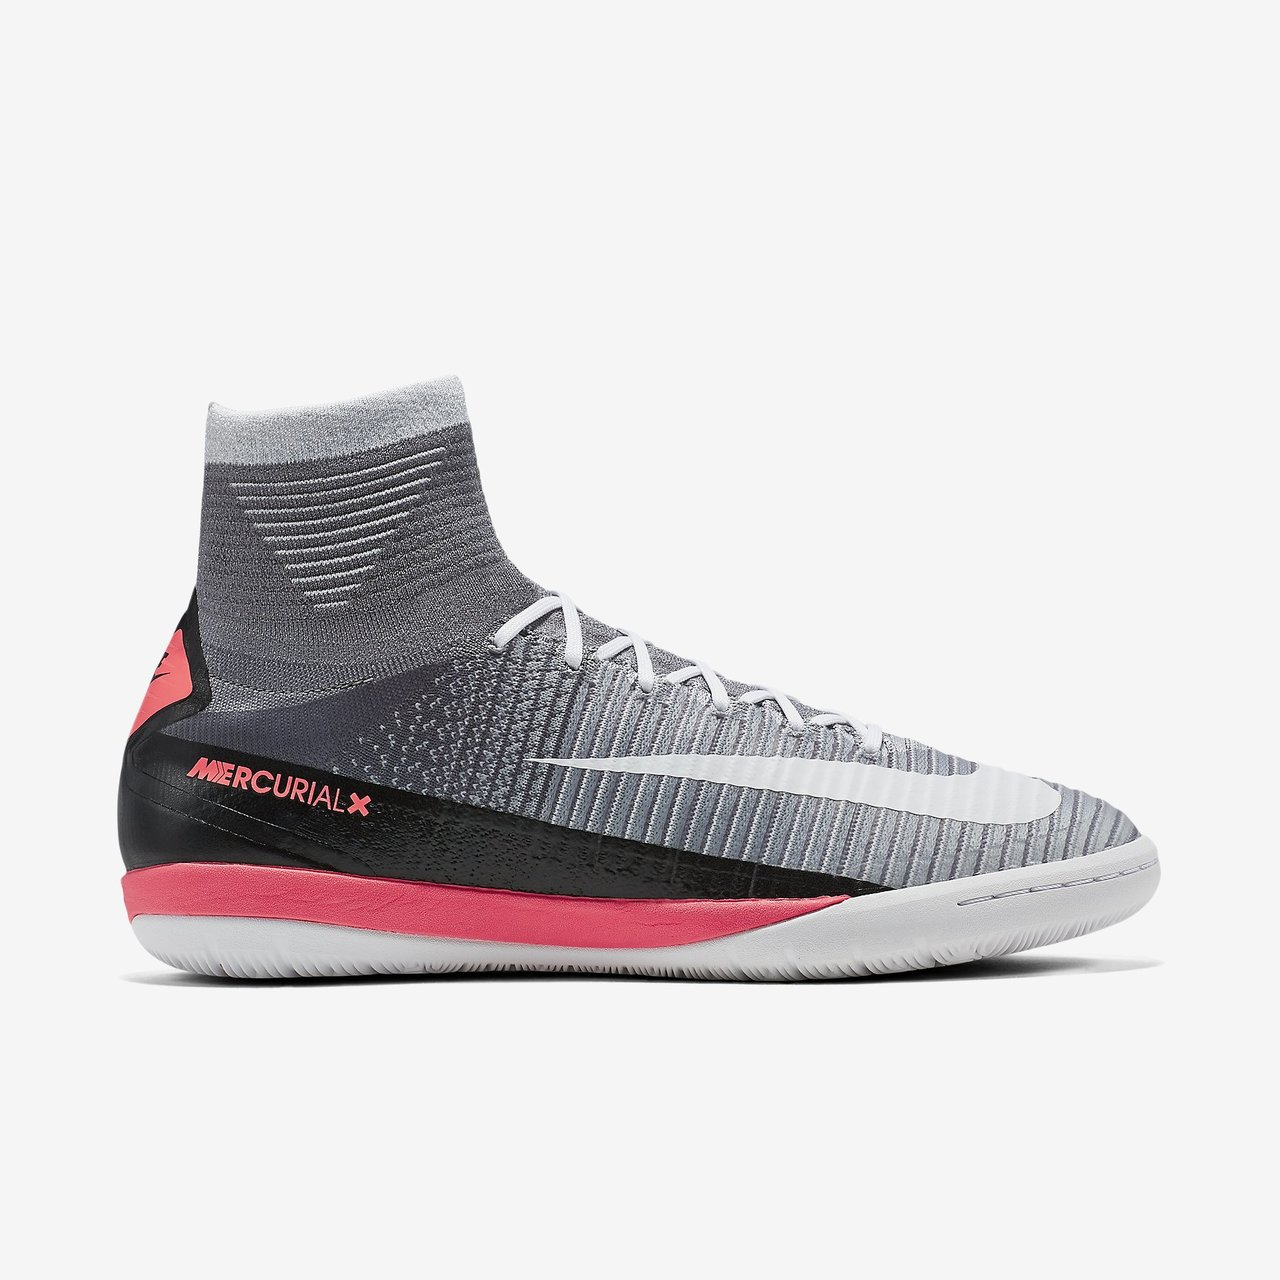 a2bf8ff727ee Click to enlarge image  nike mercurialx proximo ii ic heritage pack wolf grey pure platinum infrared white a.jpg  ...